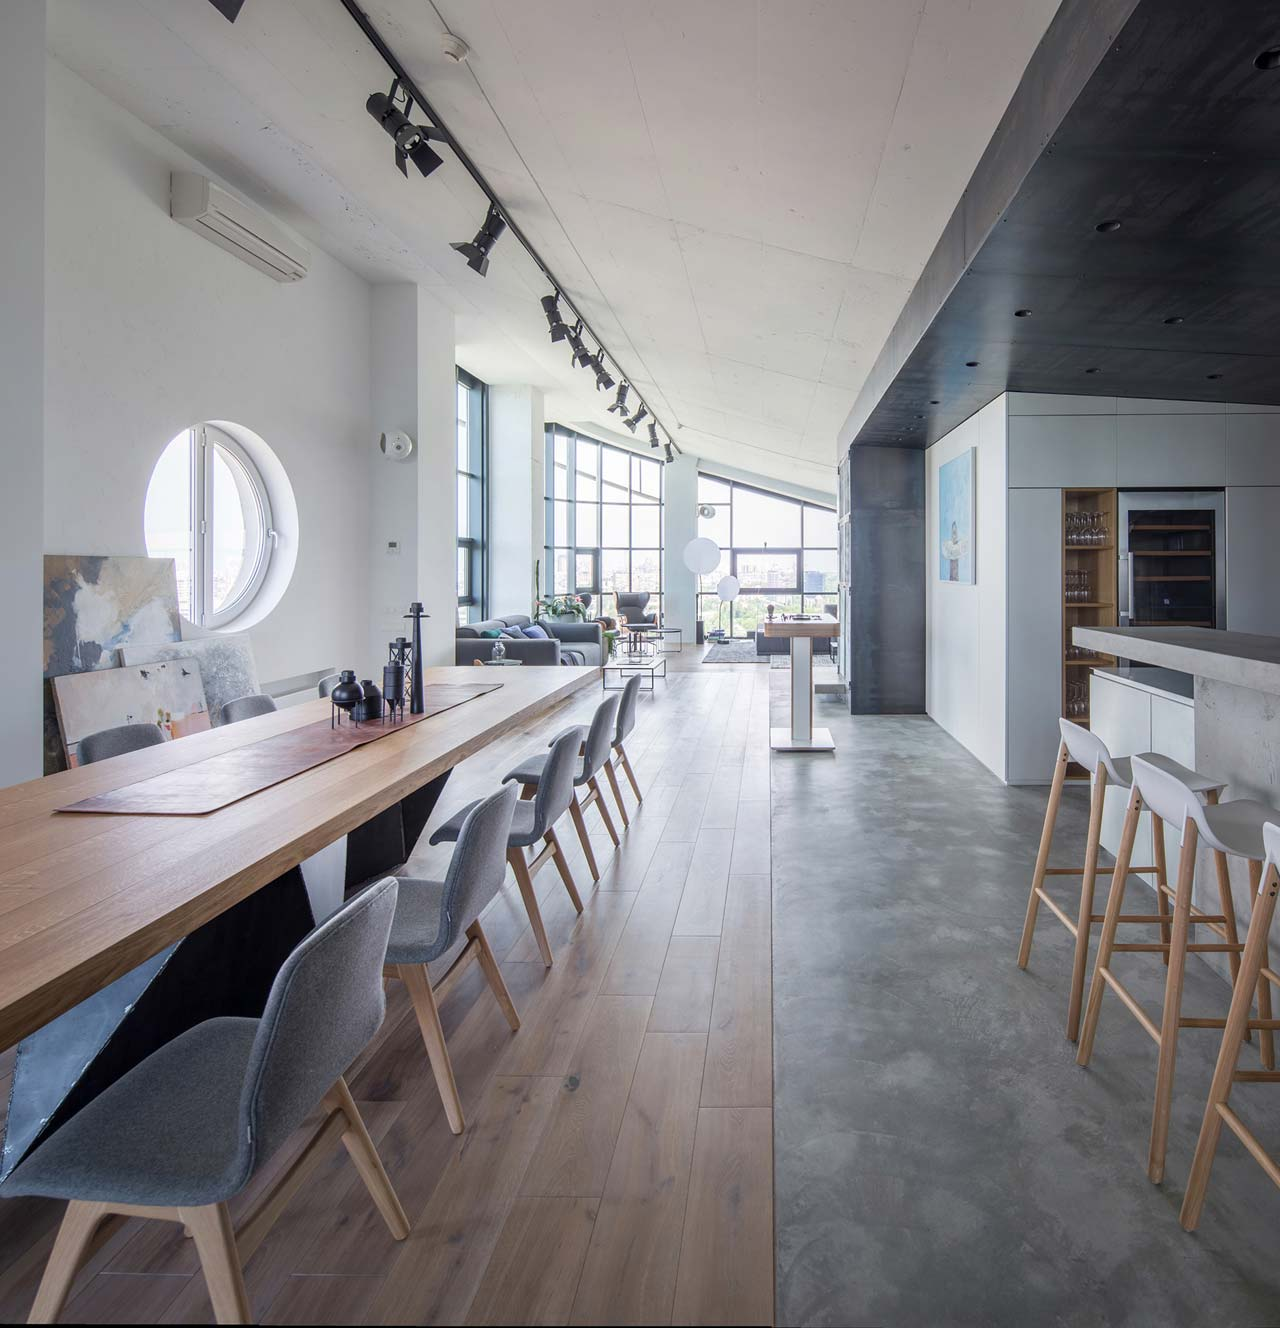 This gorgeous penthouse features 6 meter ceilings, floor to ceiling windows with stunning views and a mix of contemporary and industrial